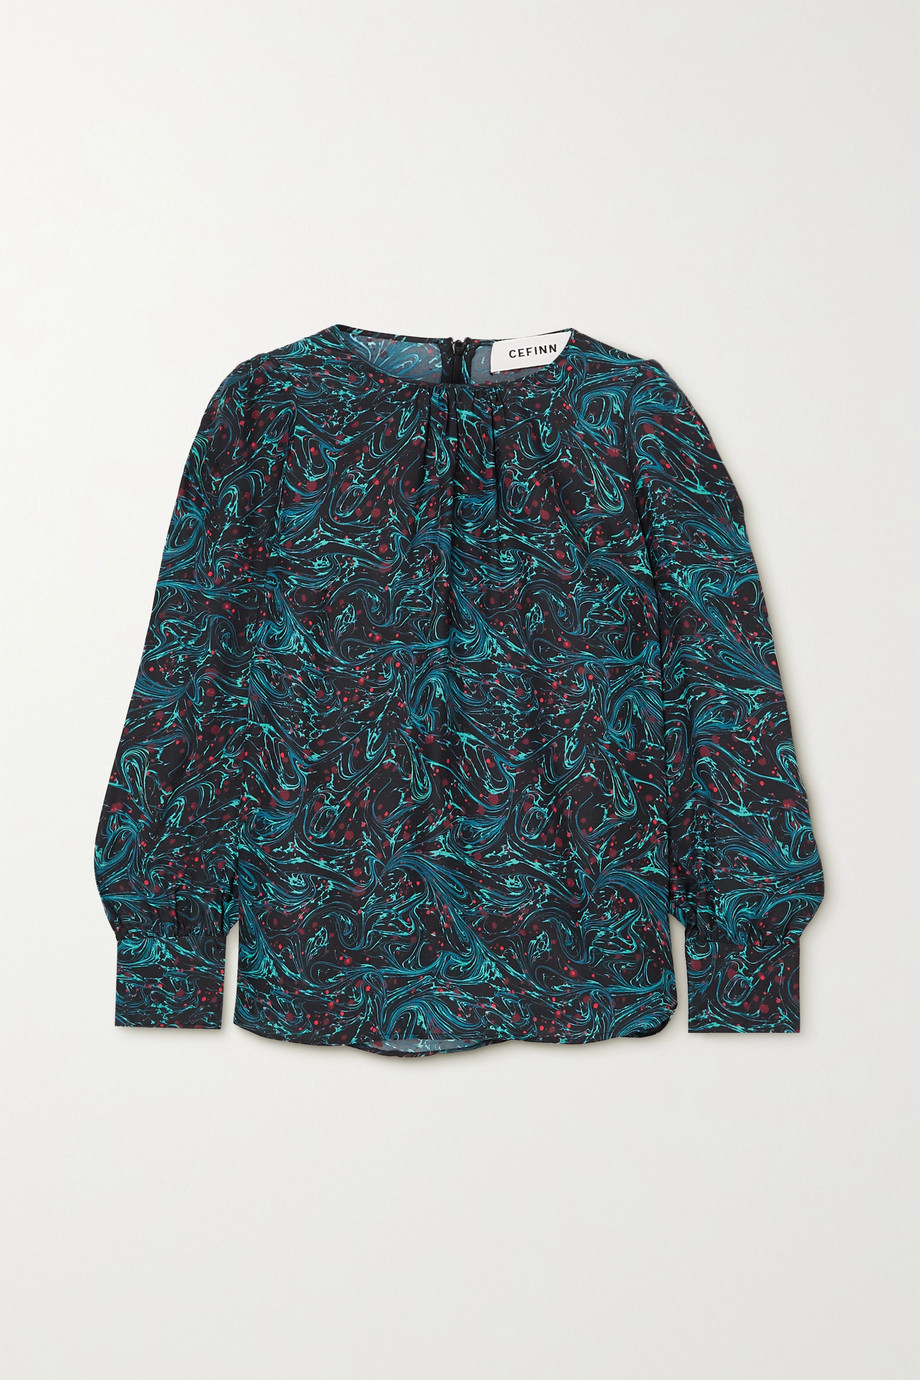 CEFINN Olivia gathered printed twill blouse